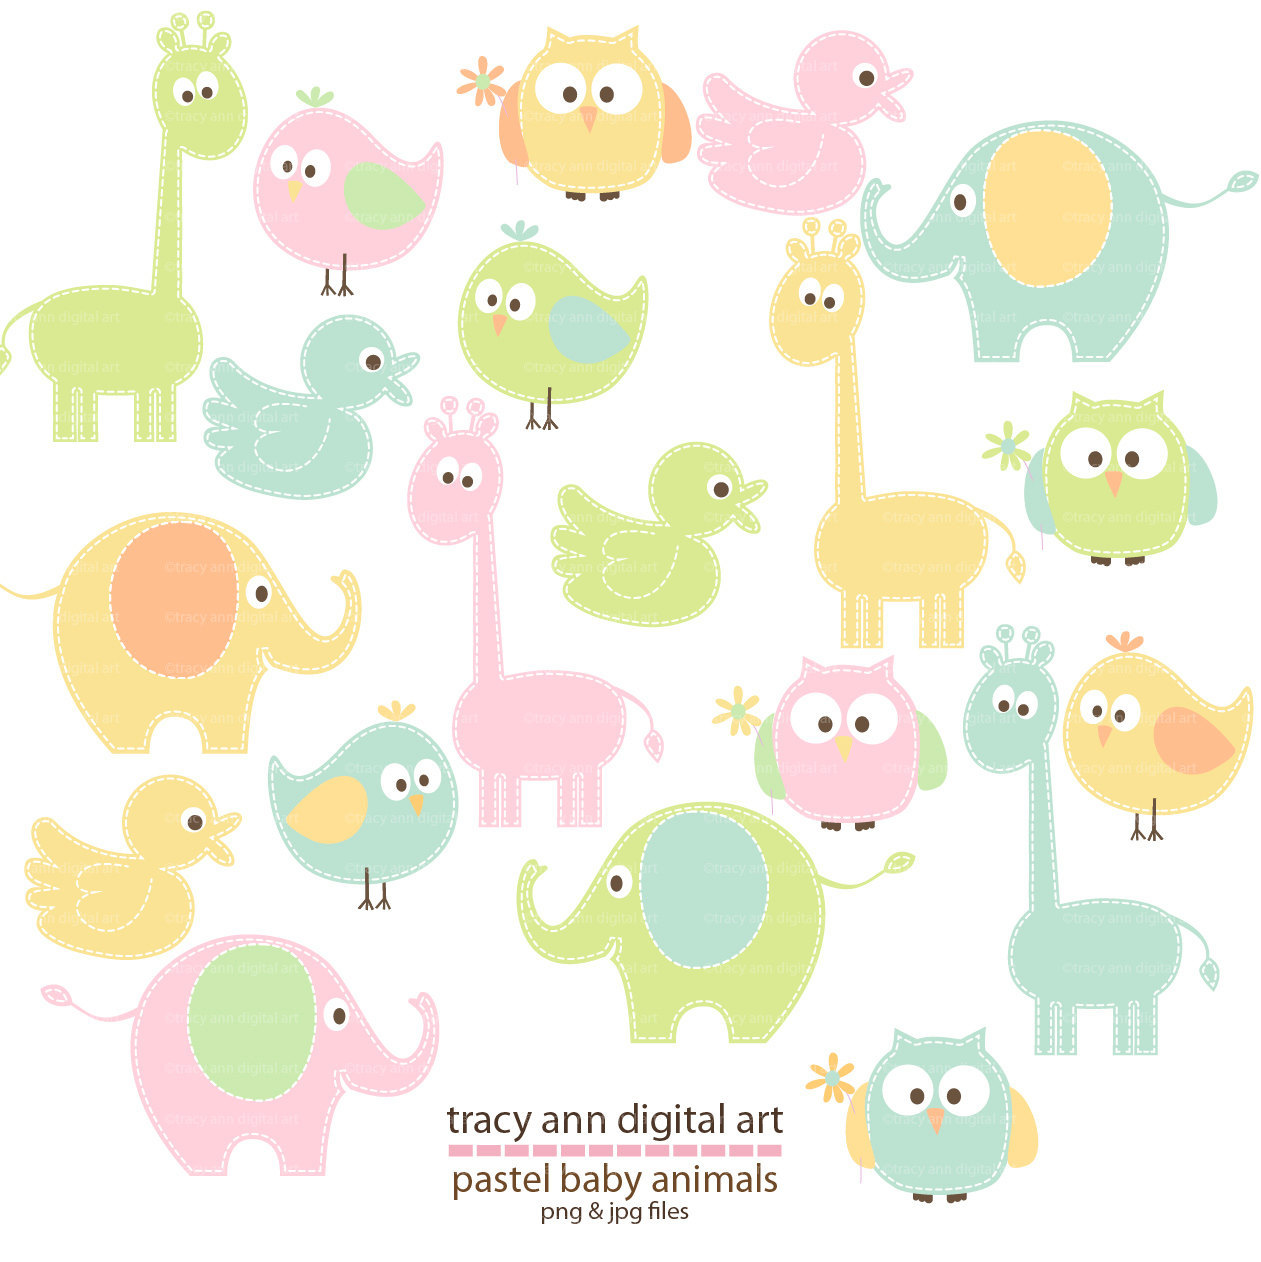 Free-vintage-baby-clipart- ... 6f0ae35a7-free-vintage-baby-clipart- ... 6f0ae35a75b6662602e7ccfce3407c .-15